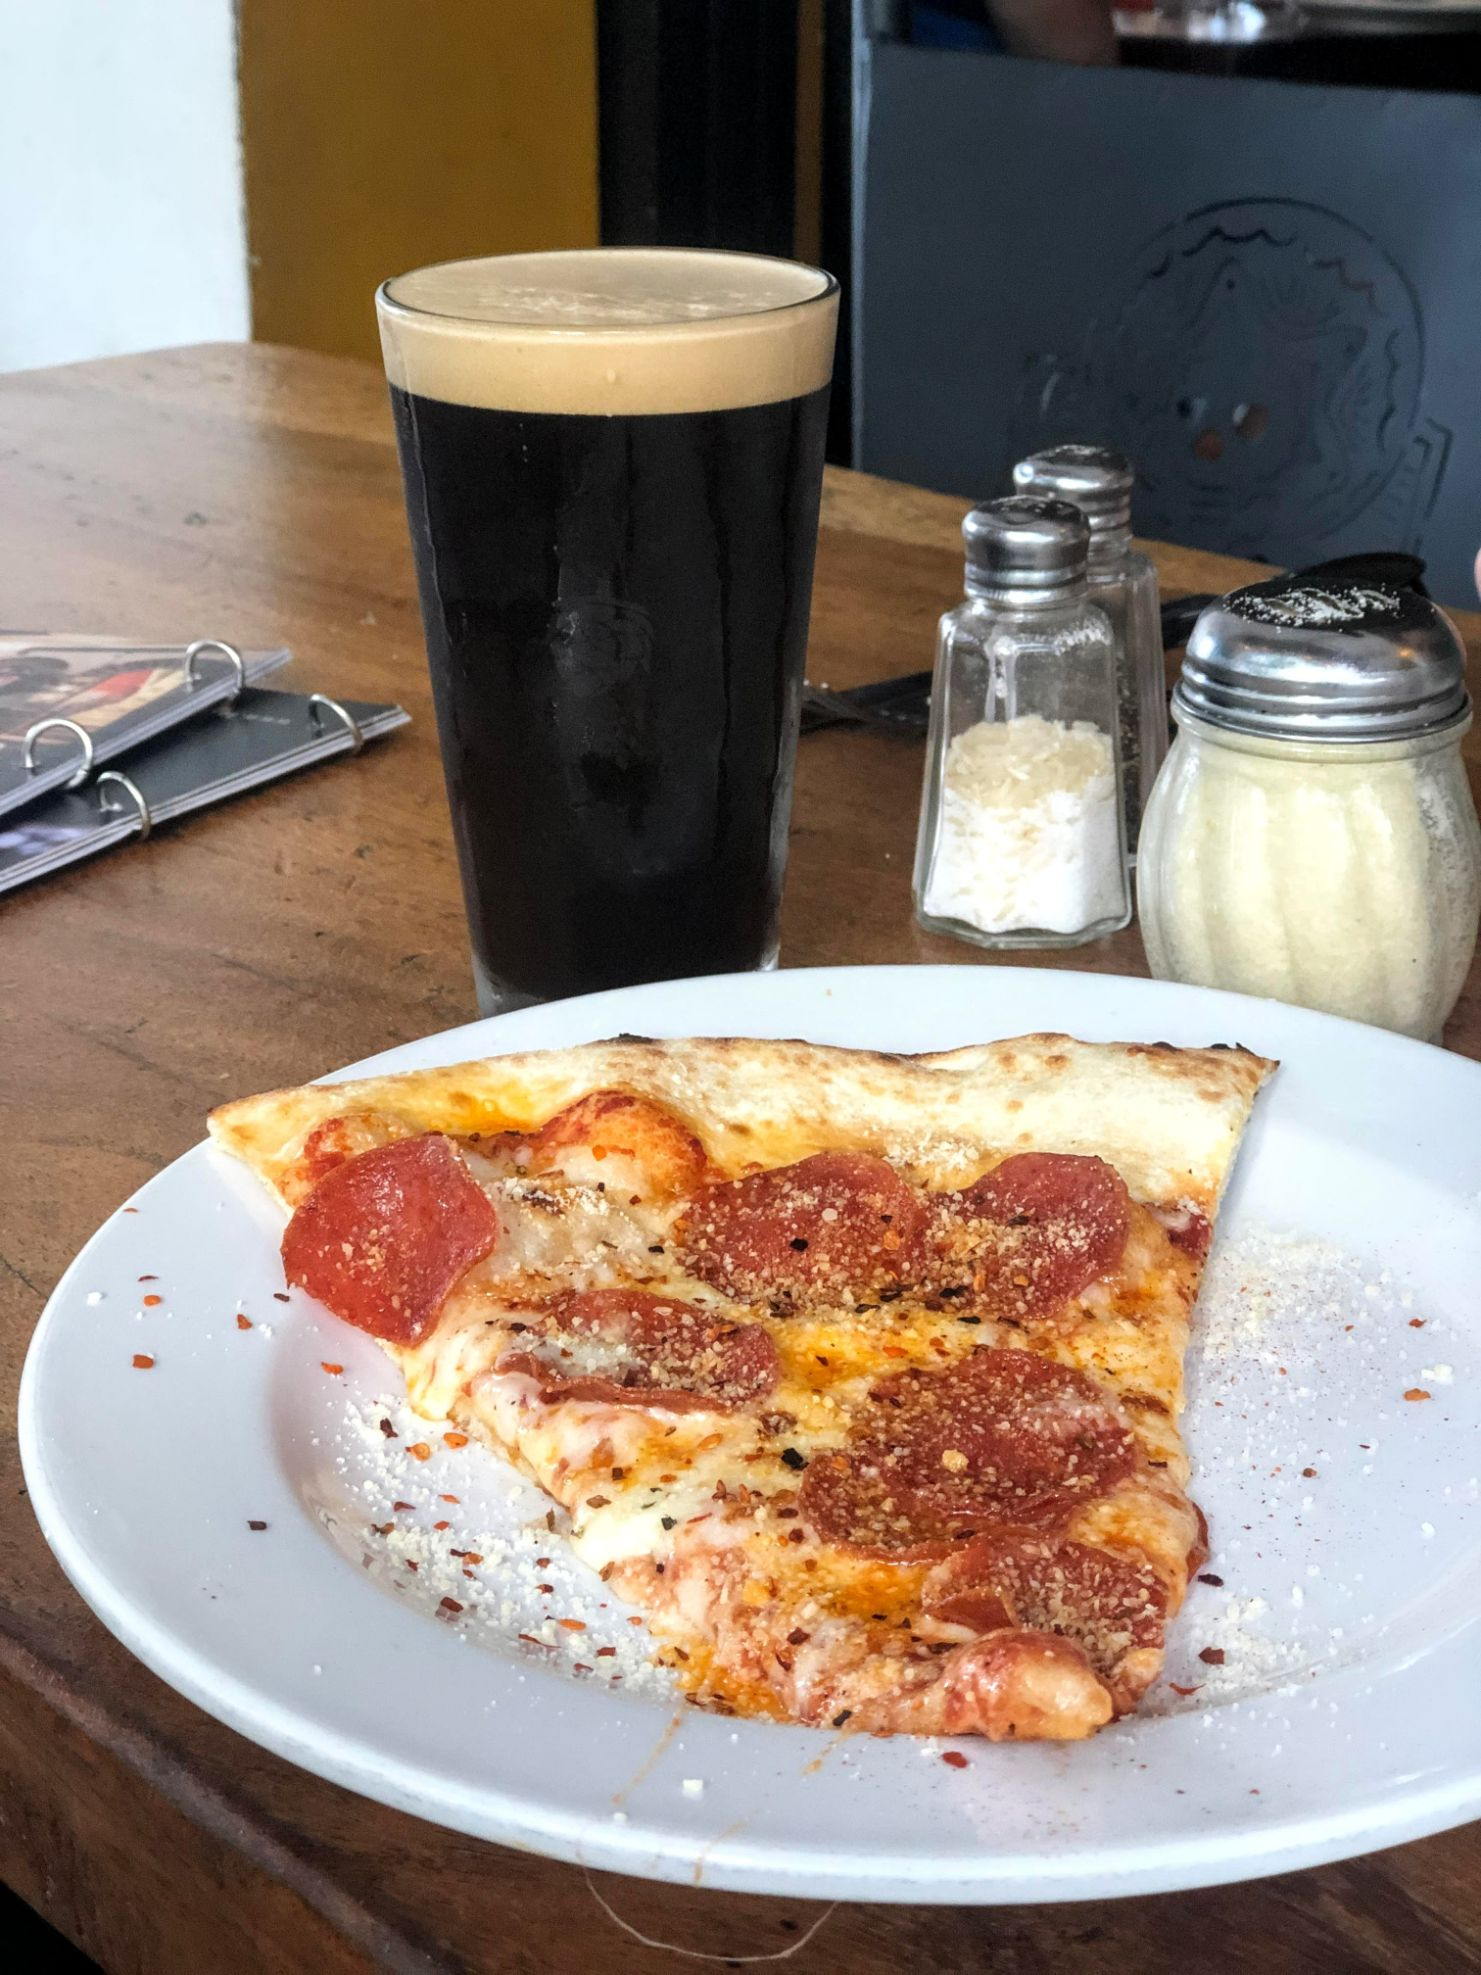 black stout and slice of pepperoni pizza at Los Muertos Brewing